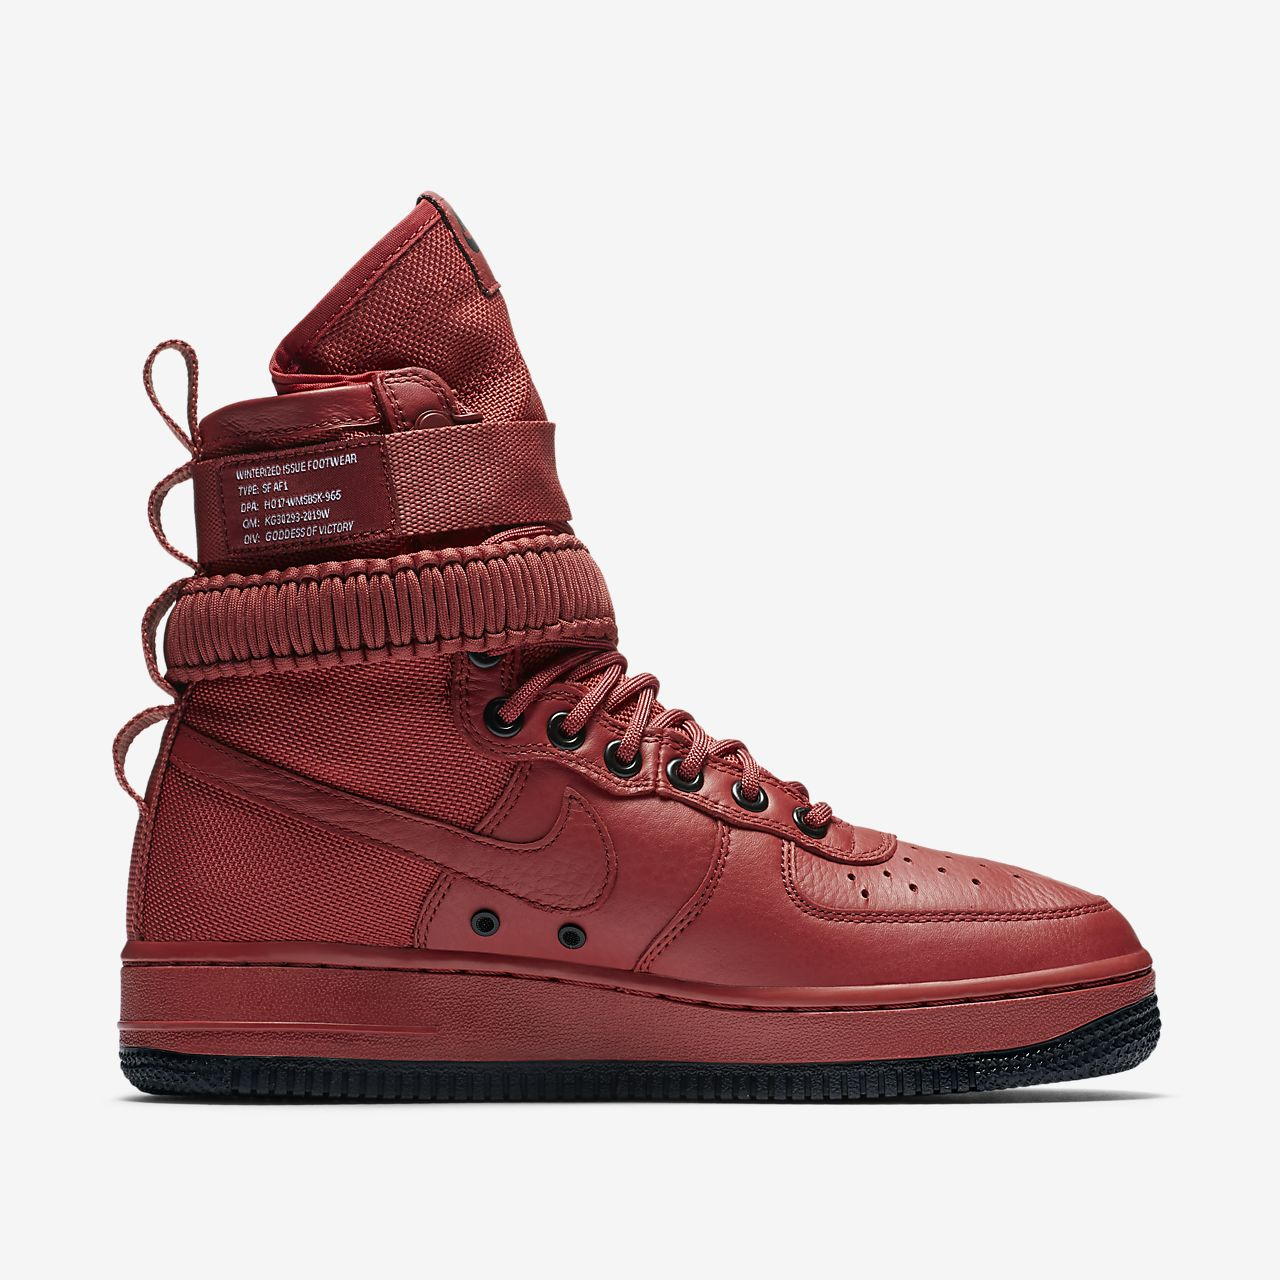 c481e33fb88d3 Bota para mujer Nike SF Air Force 1 ...